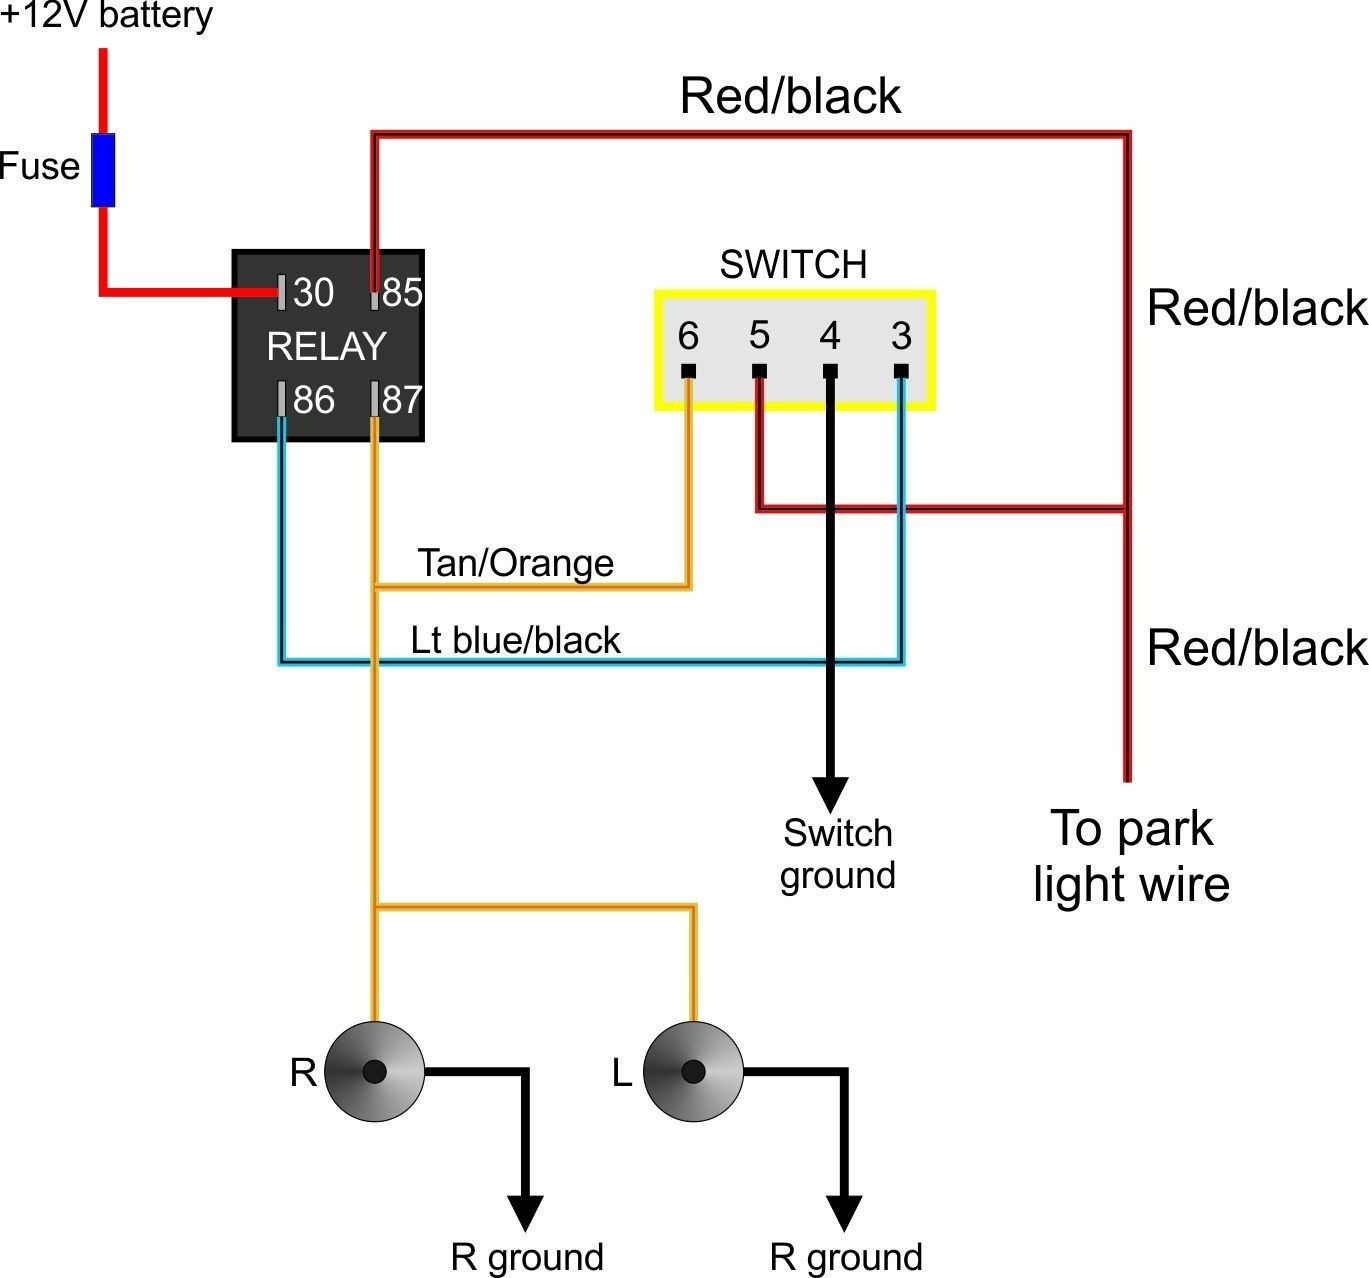 [DIAGRAM_4FR]  HO_3349] Relay Wiring Diagram 6 Pin Schematic Wiring | Wiring Diagram For 6 Pole Bs Switch |  | Chor Istic Icaen Umng Mohammedshrine Librar Wiring 101